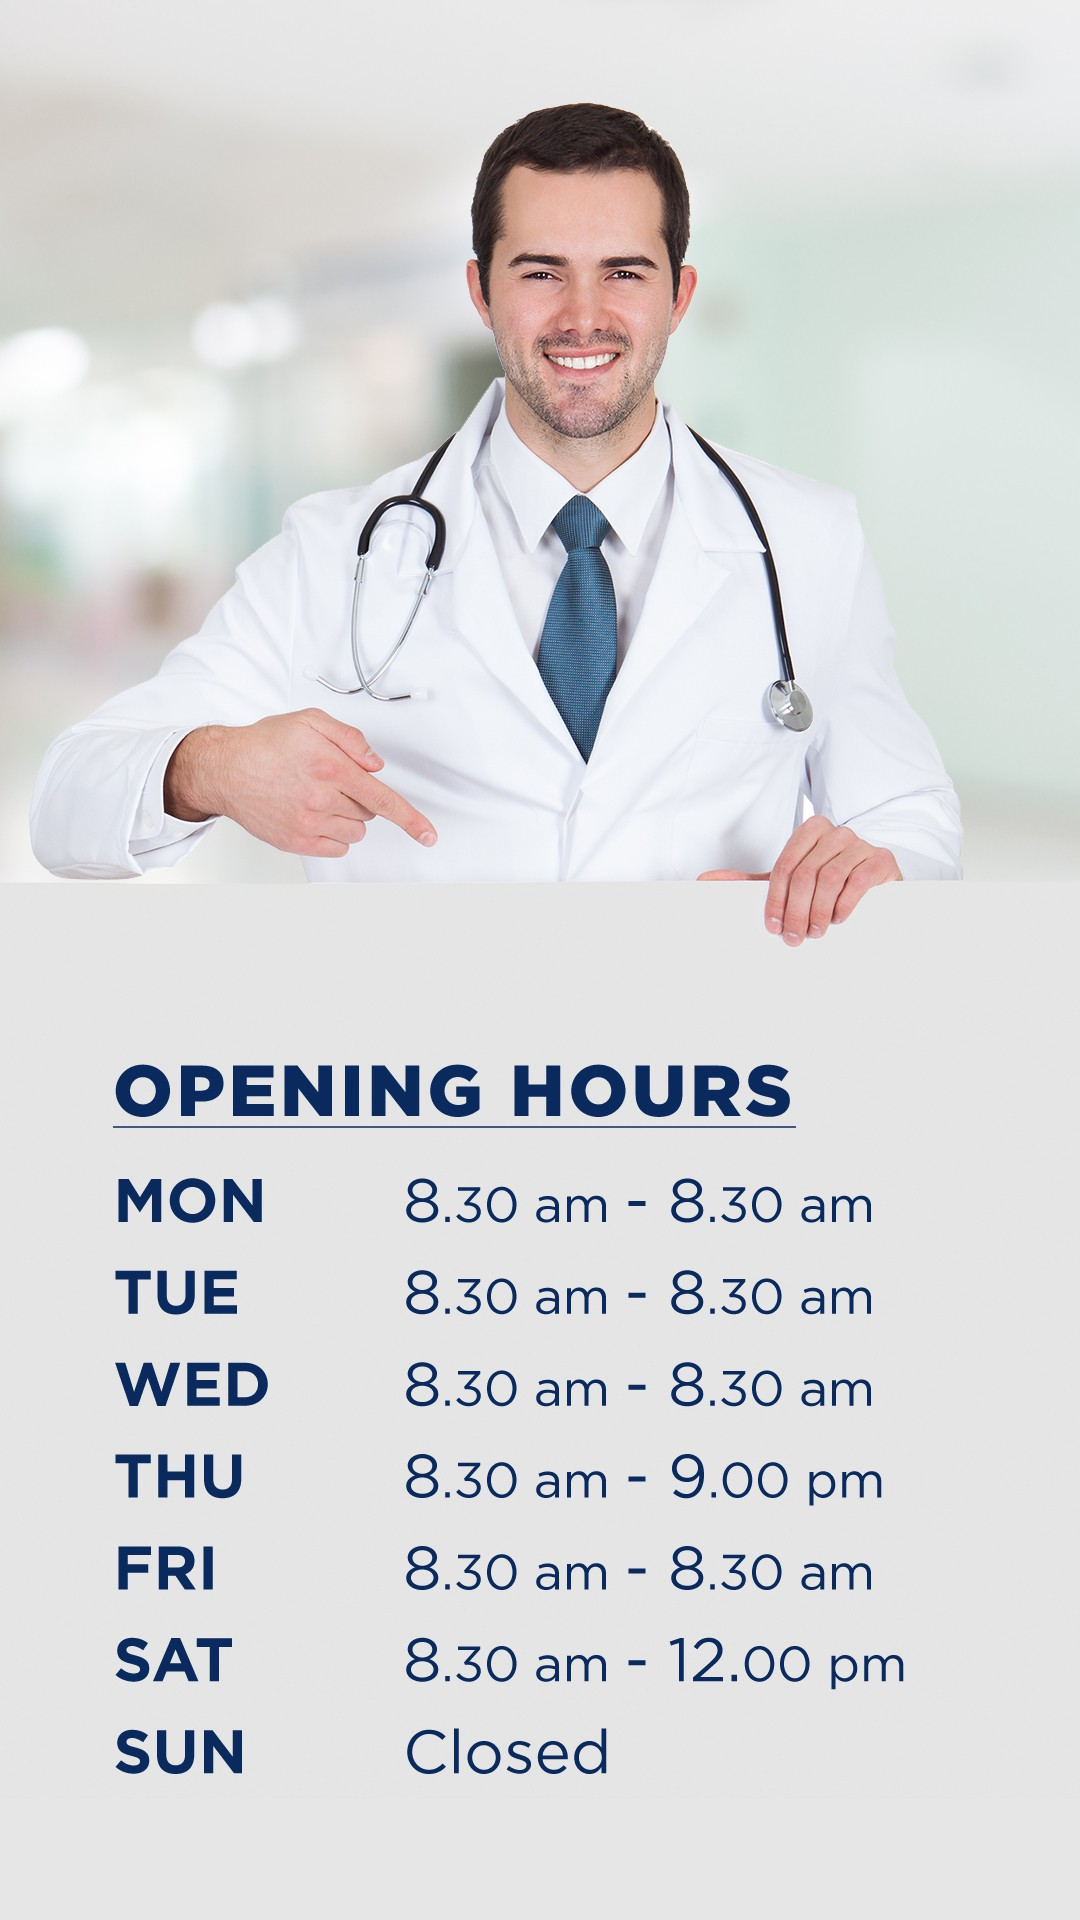 Practice Opening Hours Posters